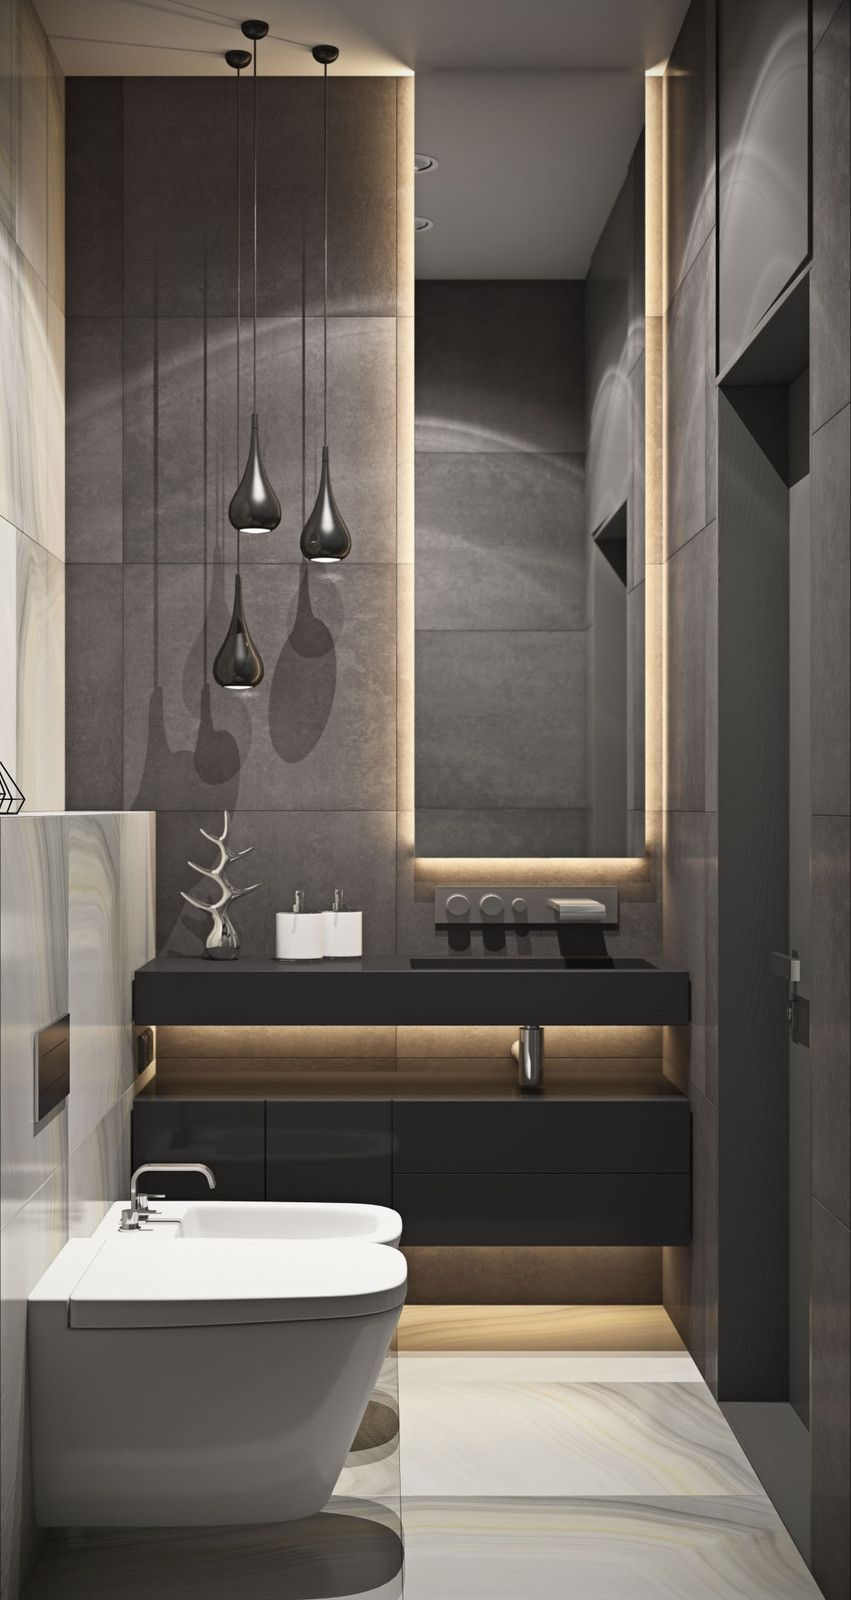 Contemporary Light Fixtures Inspired By Architectural Design  Paiges Home  Bathroom Bathroom